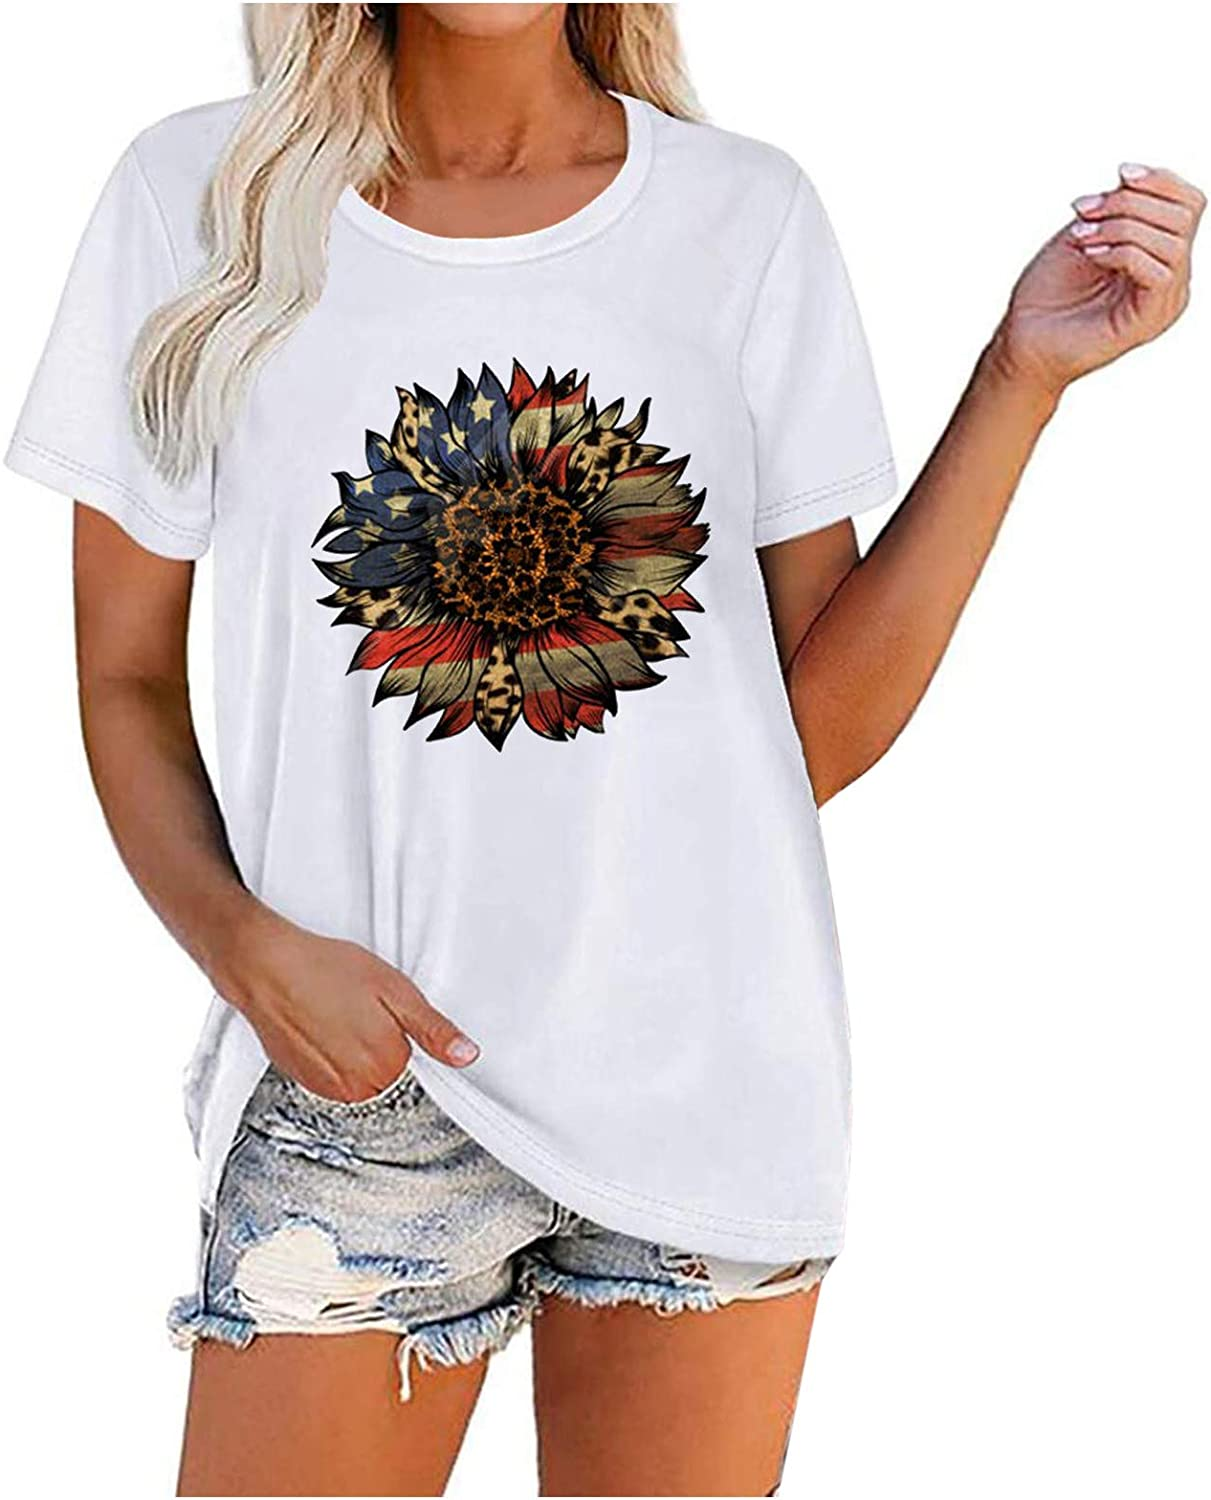 Low price Women Freedom Shirts American Flag New item of 4th Patriotic July